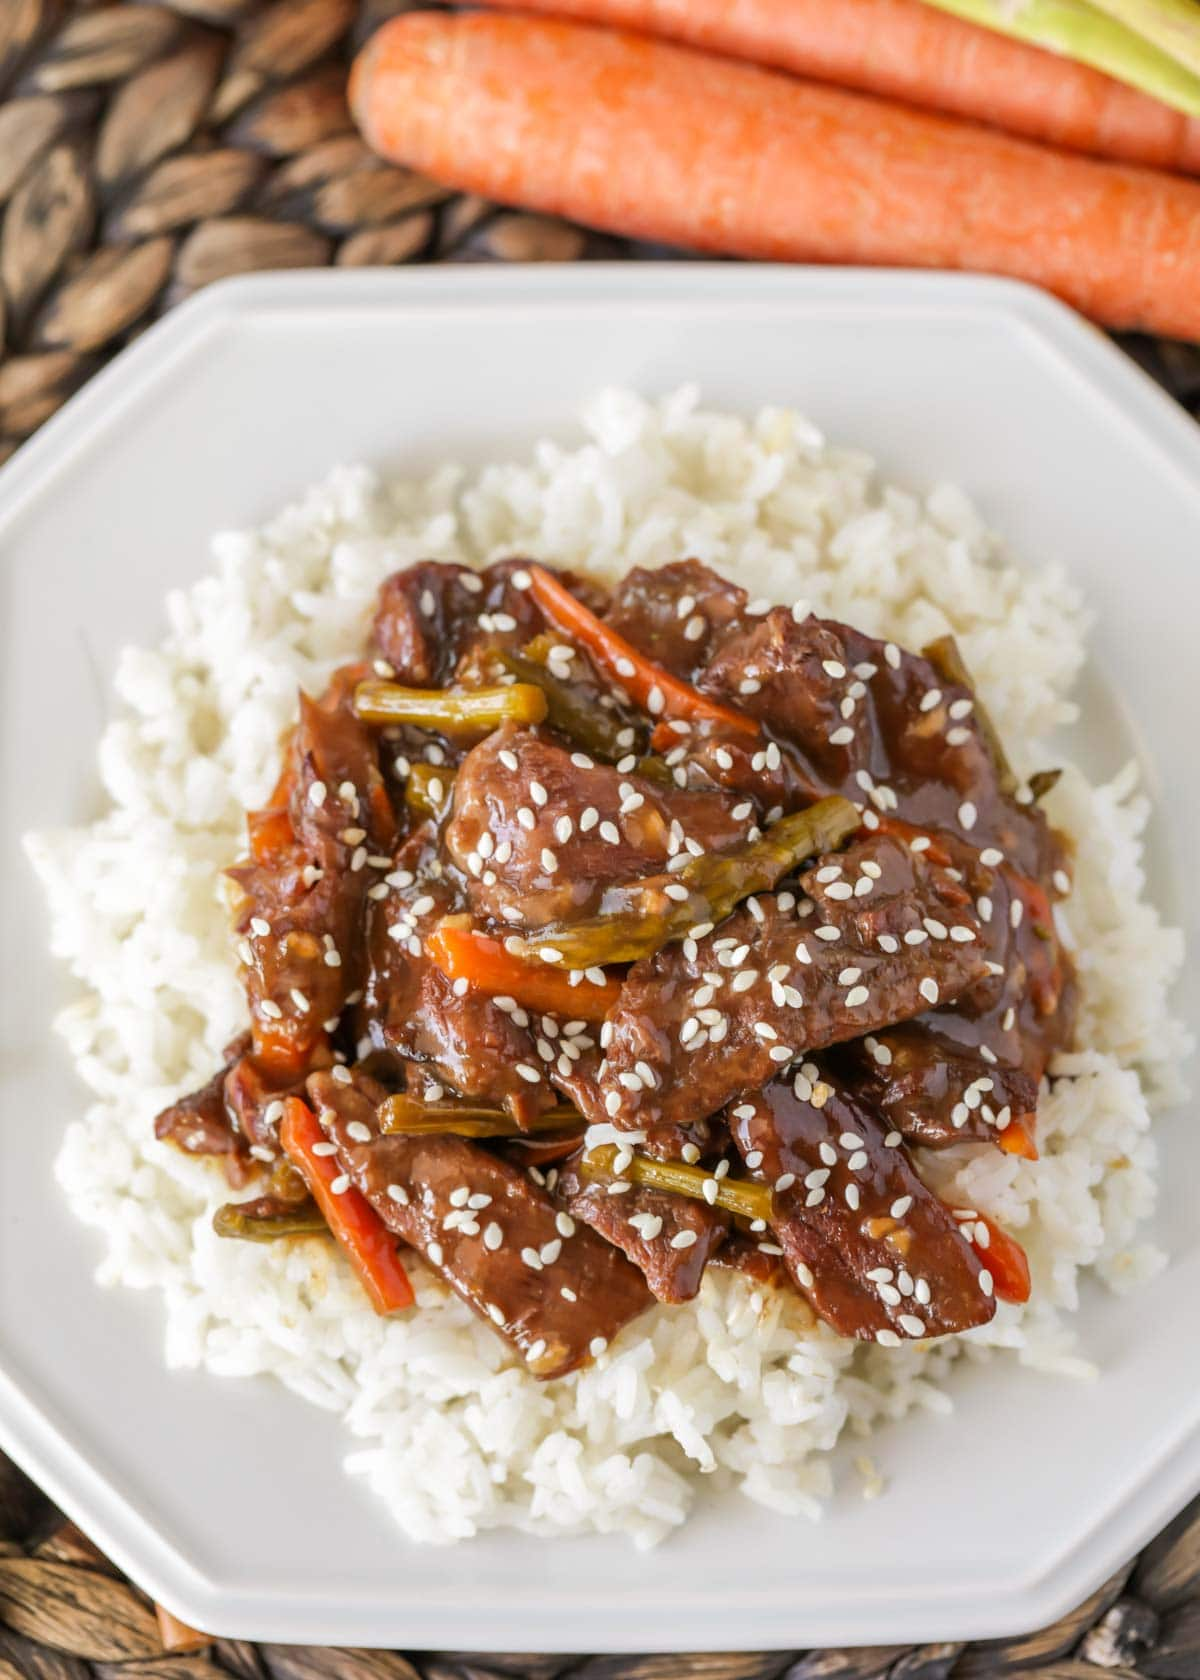 mongolian beef served on a bed of white rice